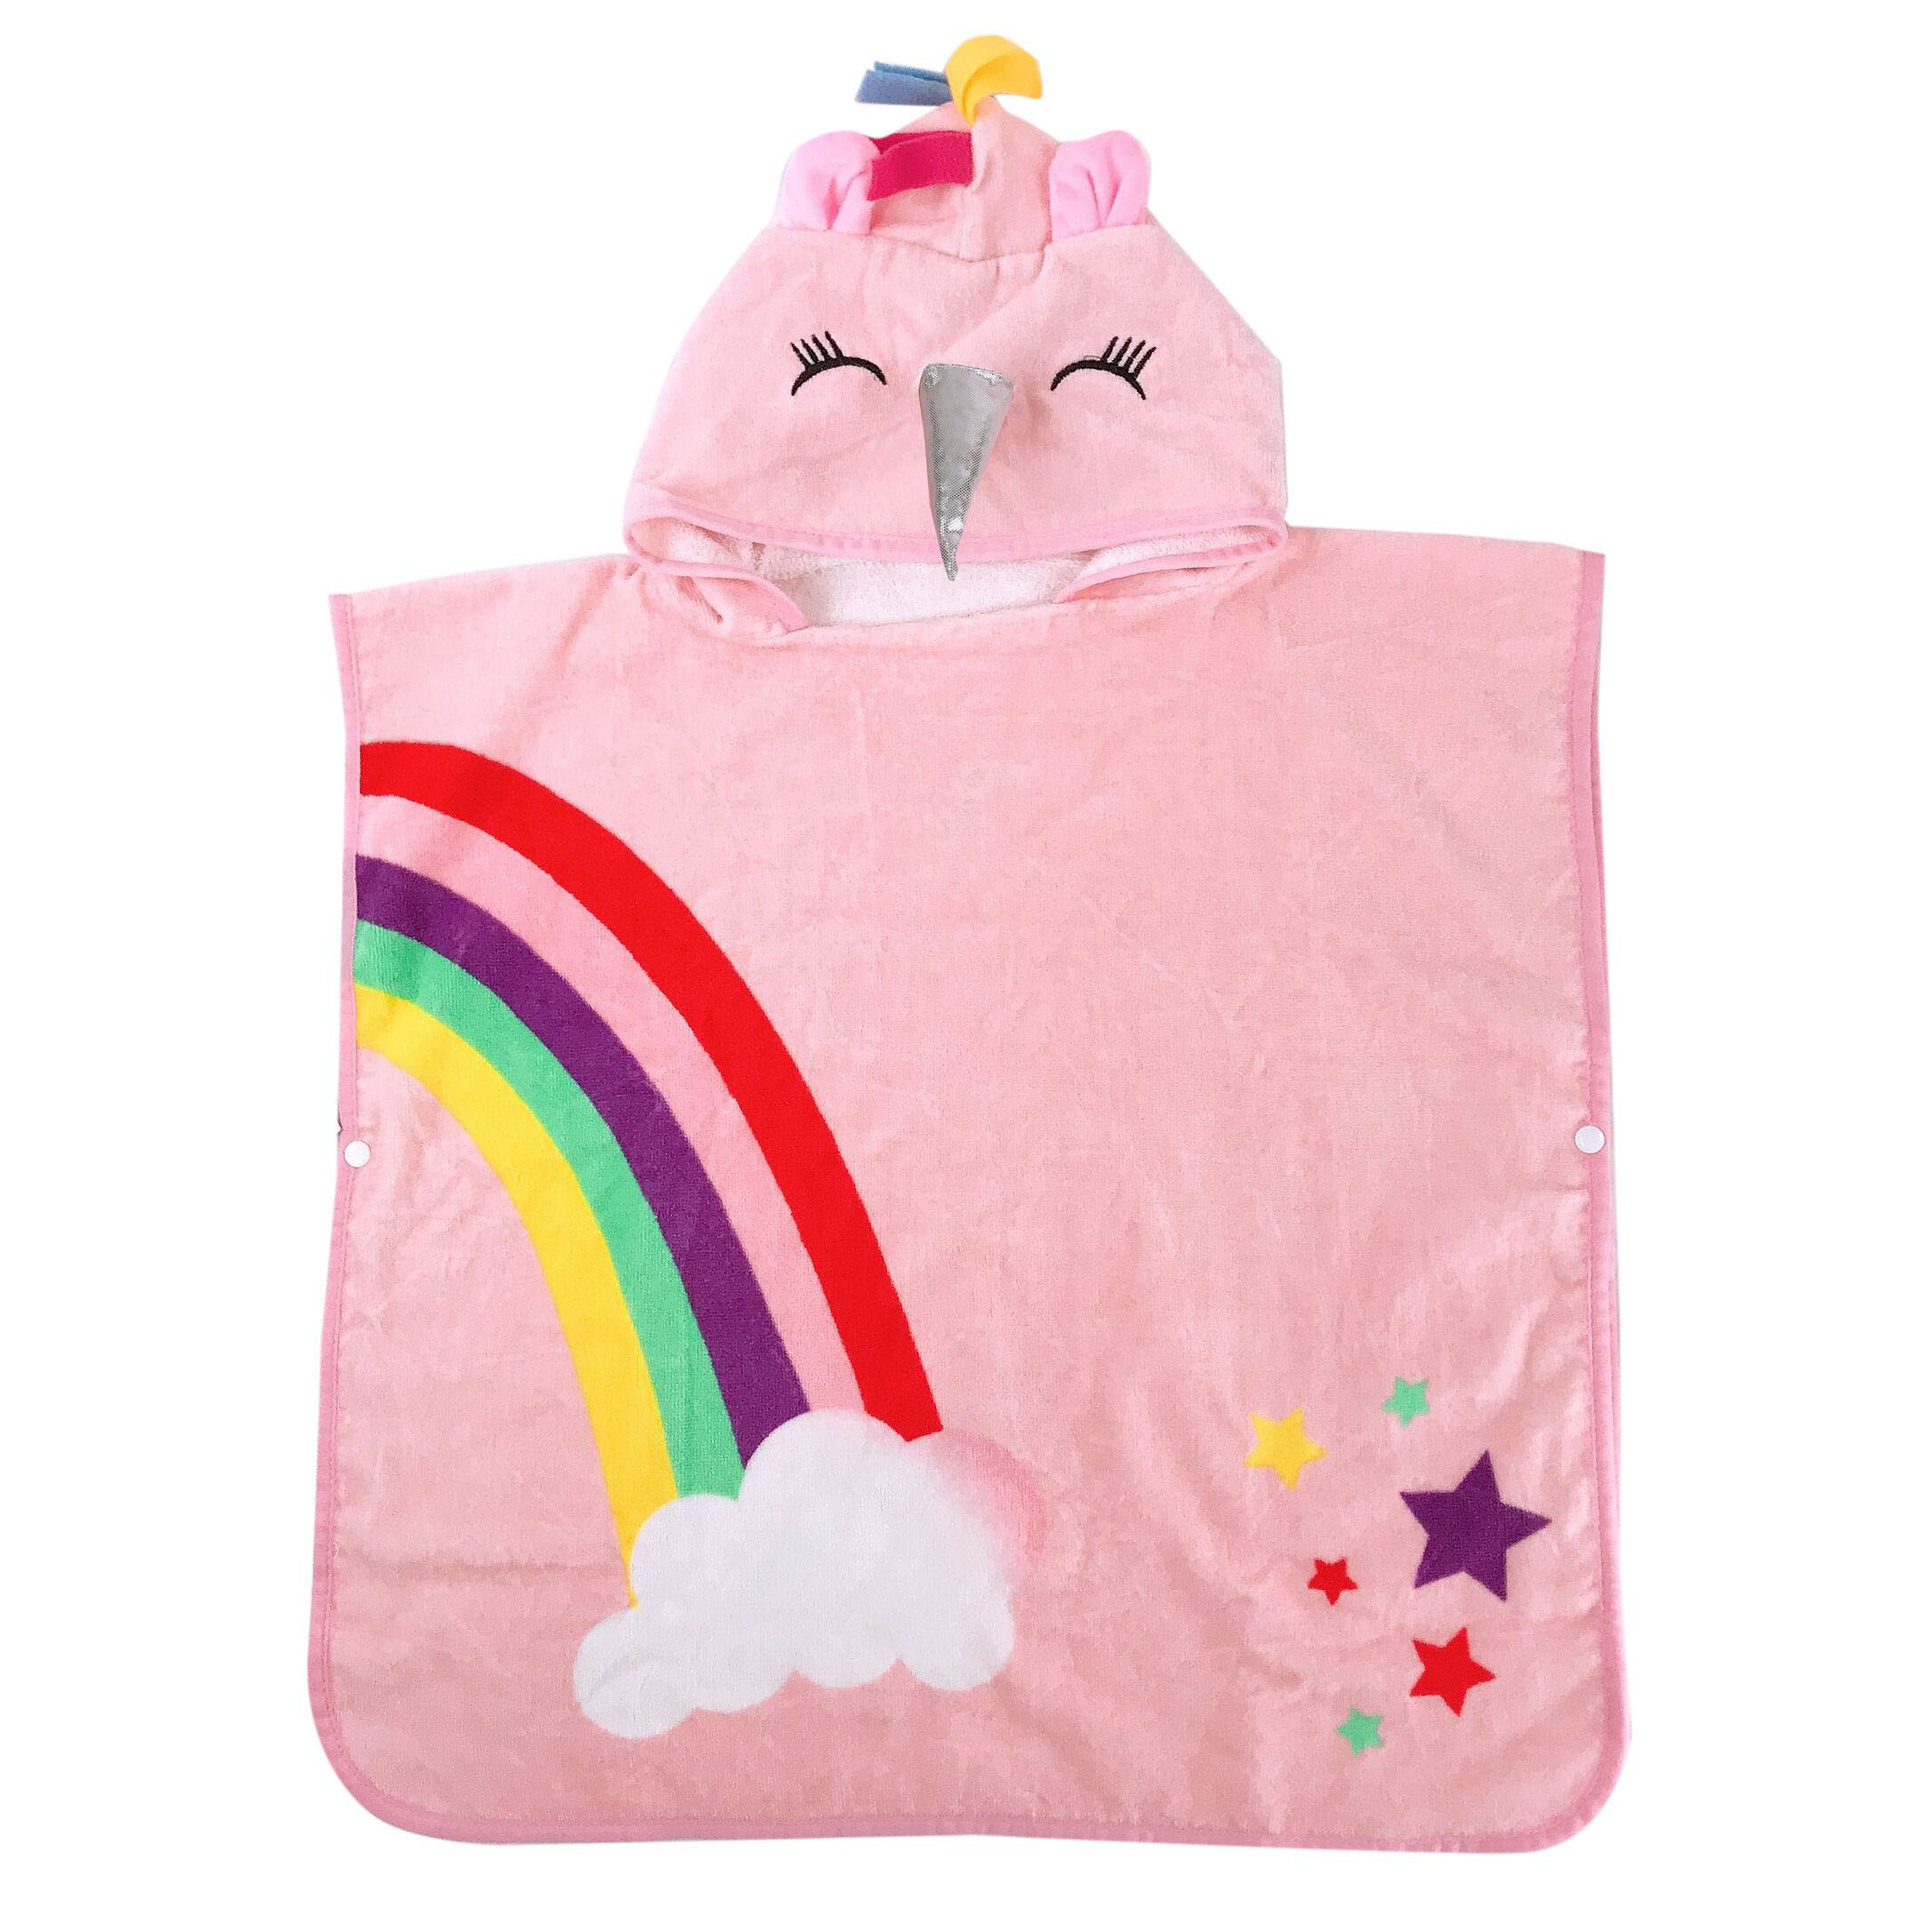 Hooded Beach Bath Towels For Kids 2-6 Yeas Old Cute Pink Unicorn With Rainbow Poncho Swim Towels Warp Compact Cover Up Gifts